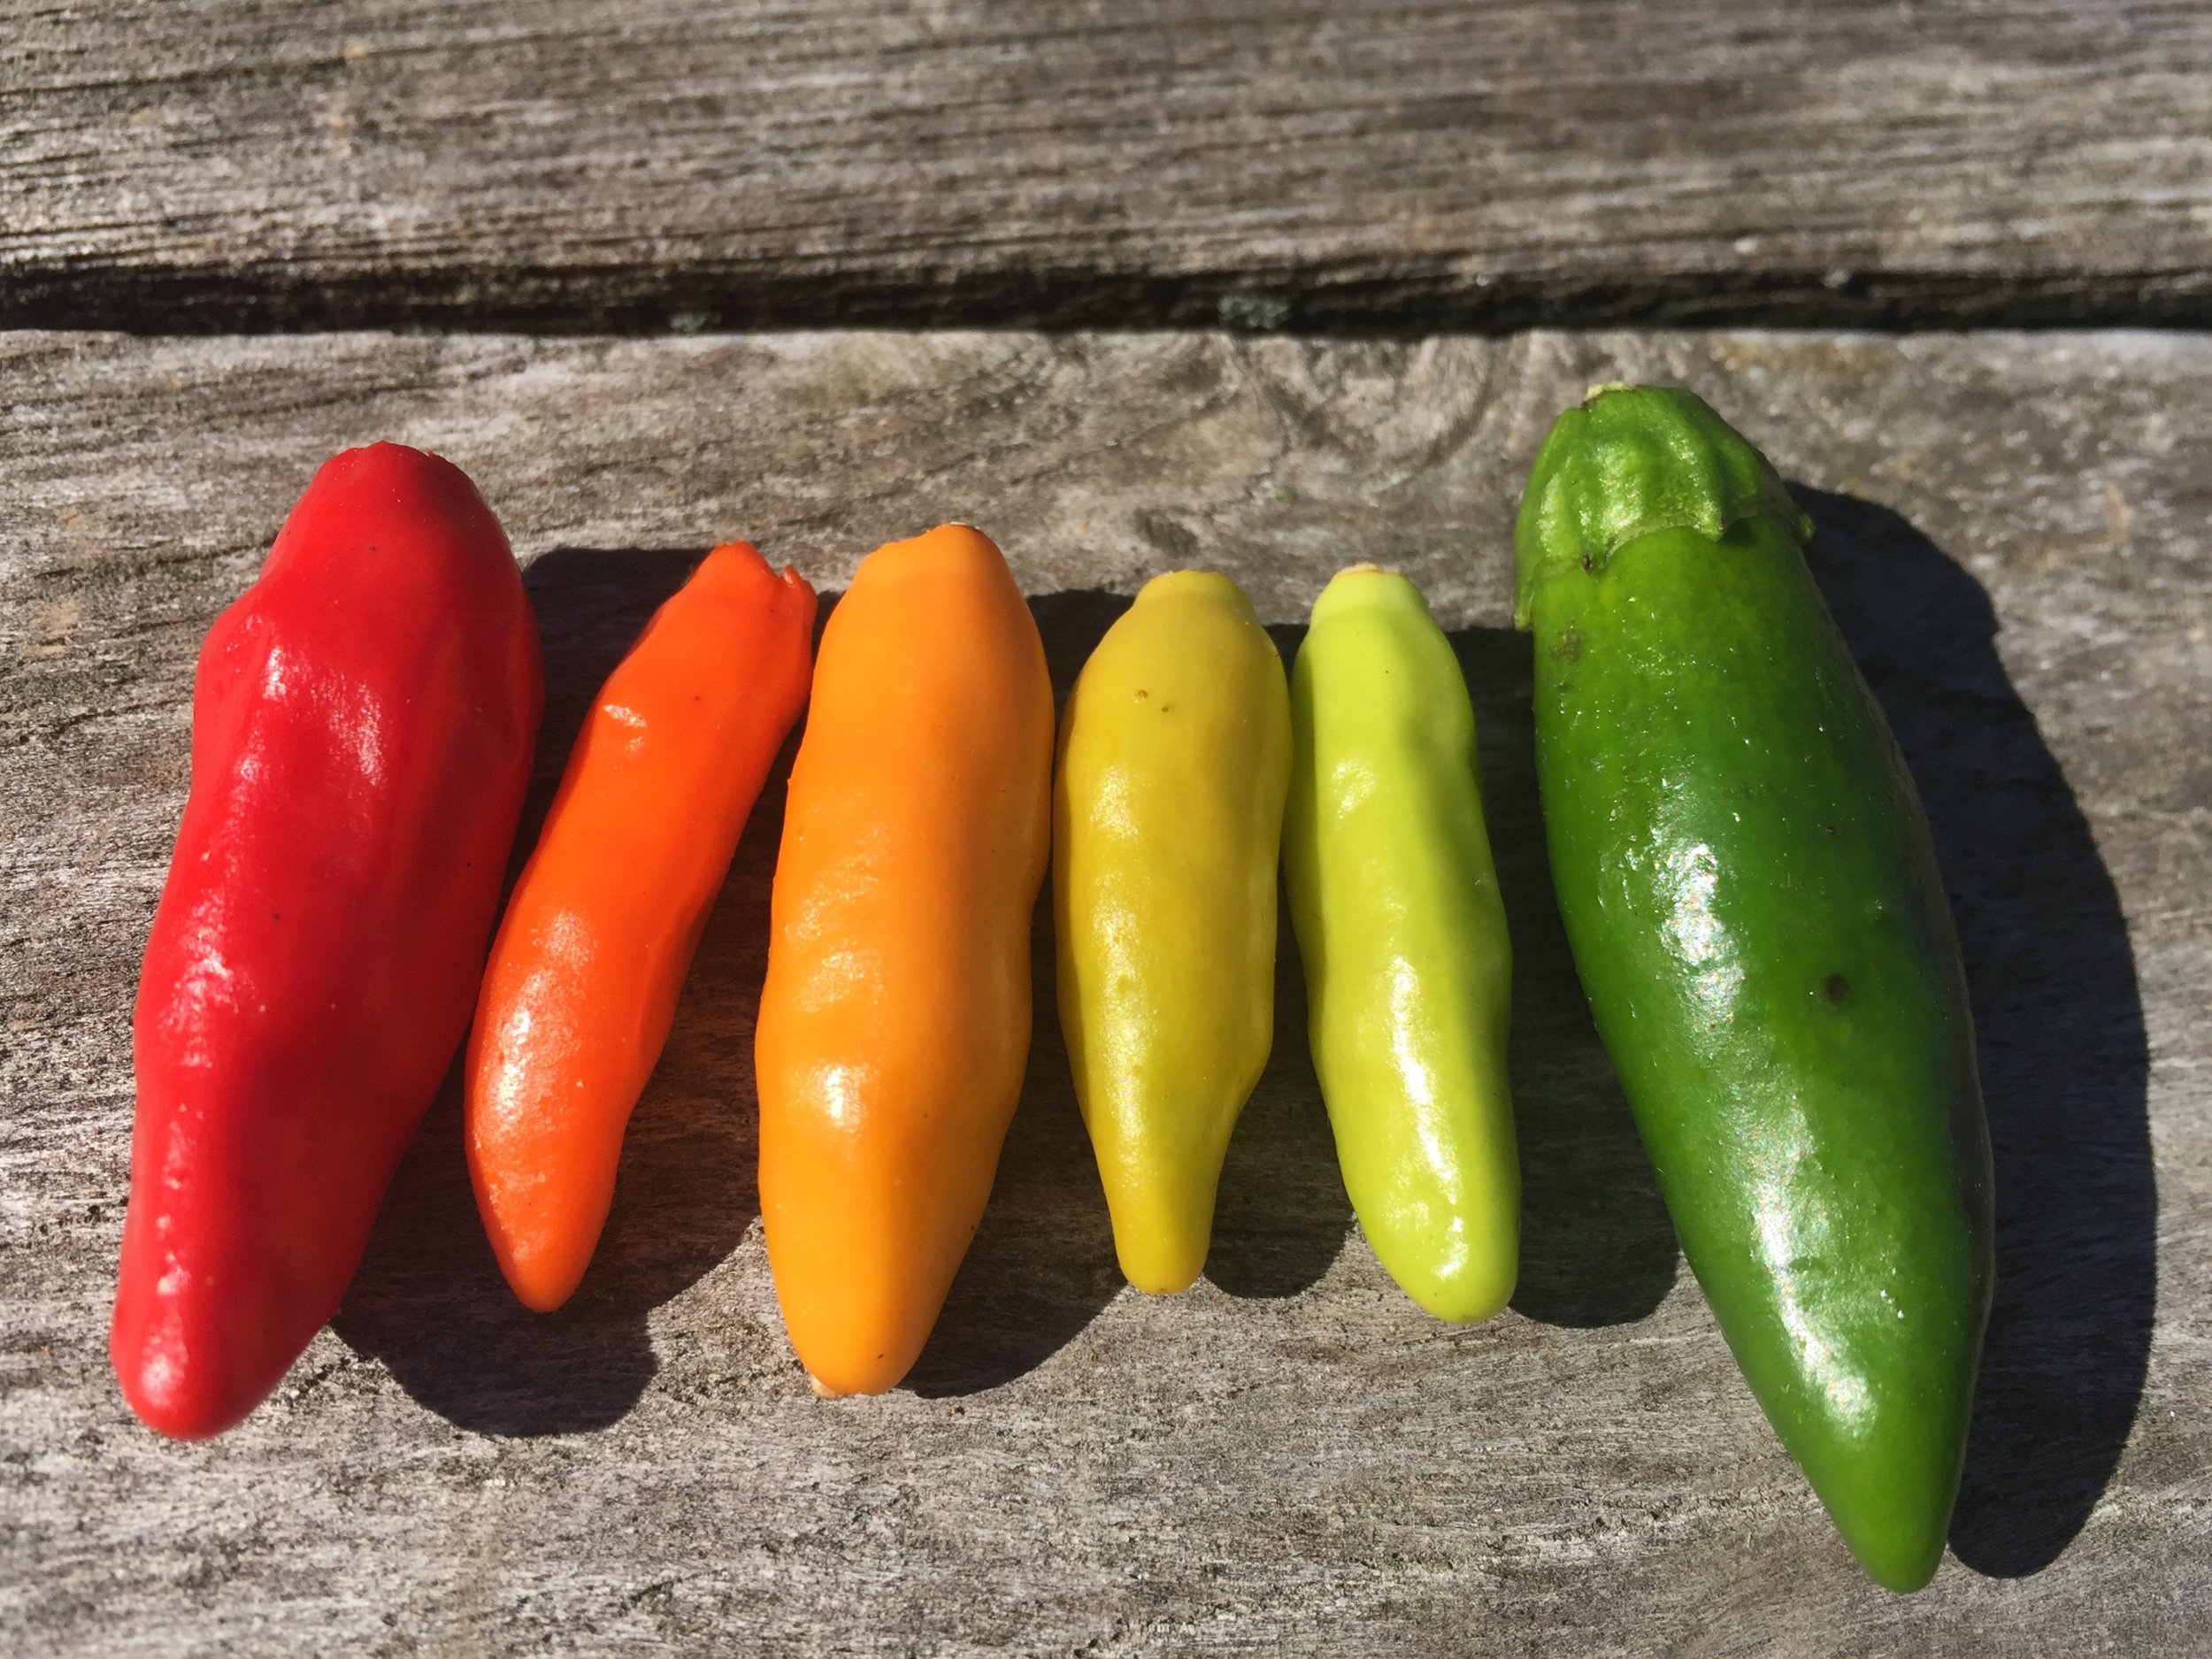 fire cider rainbow peppers 2018.jpg